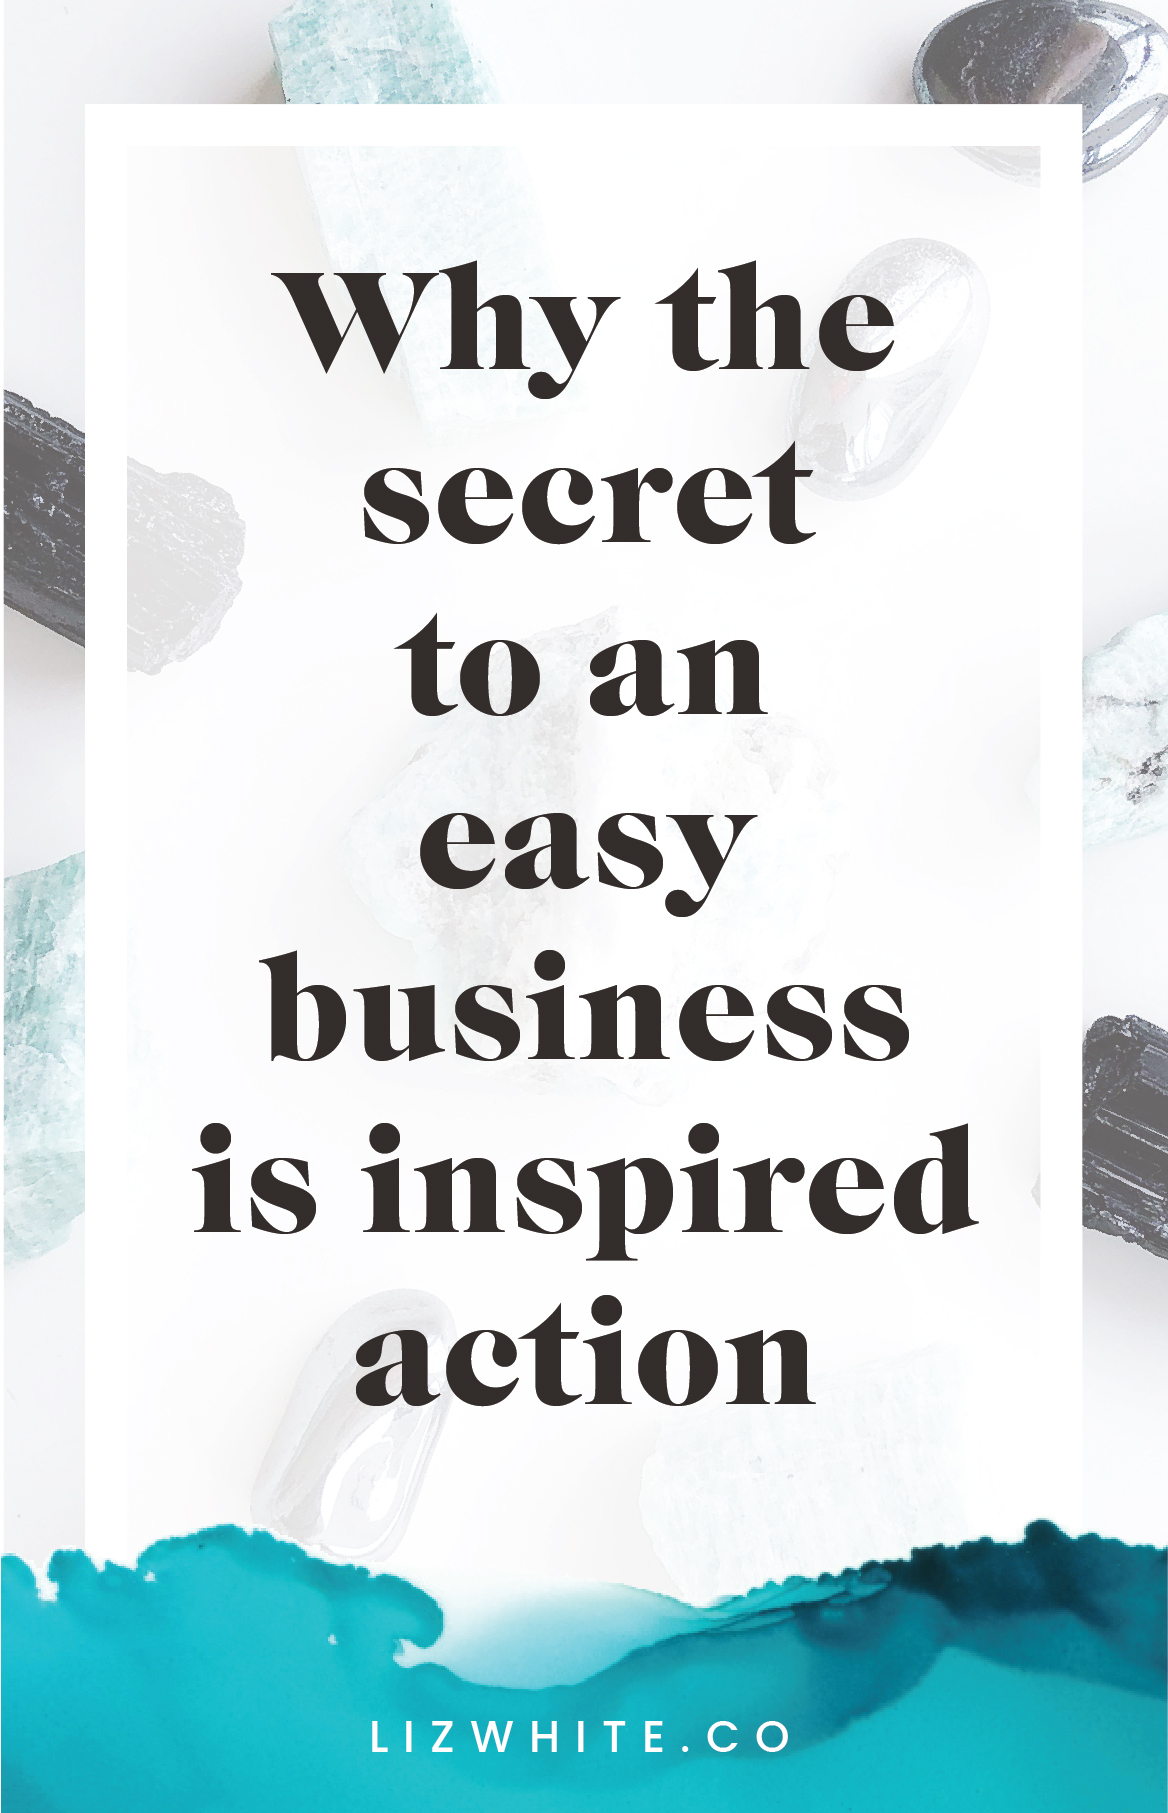 Inspired Action The Secret to an Easy Business | Liz White | #inspiredaction #moneymakingmaven #creativepreneur #intuitivebusiness | Taking inspired action is the best! It's one of the best ways to make it so that business is easy and action is easy.